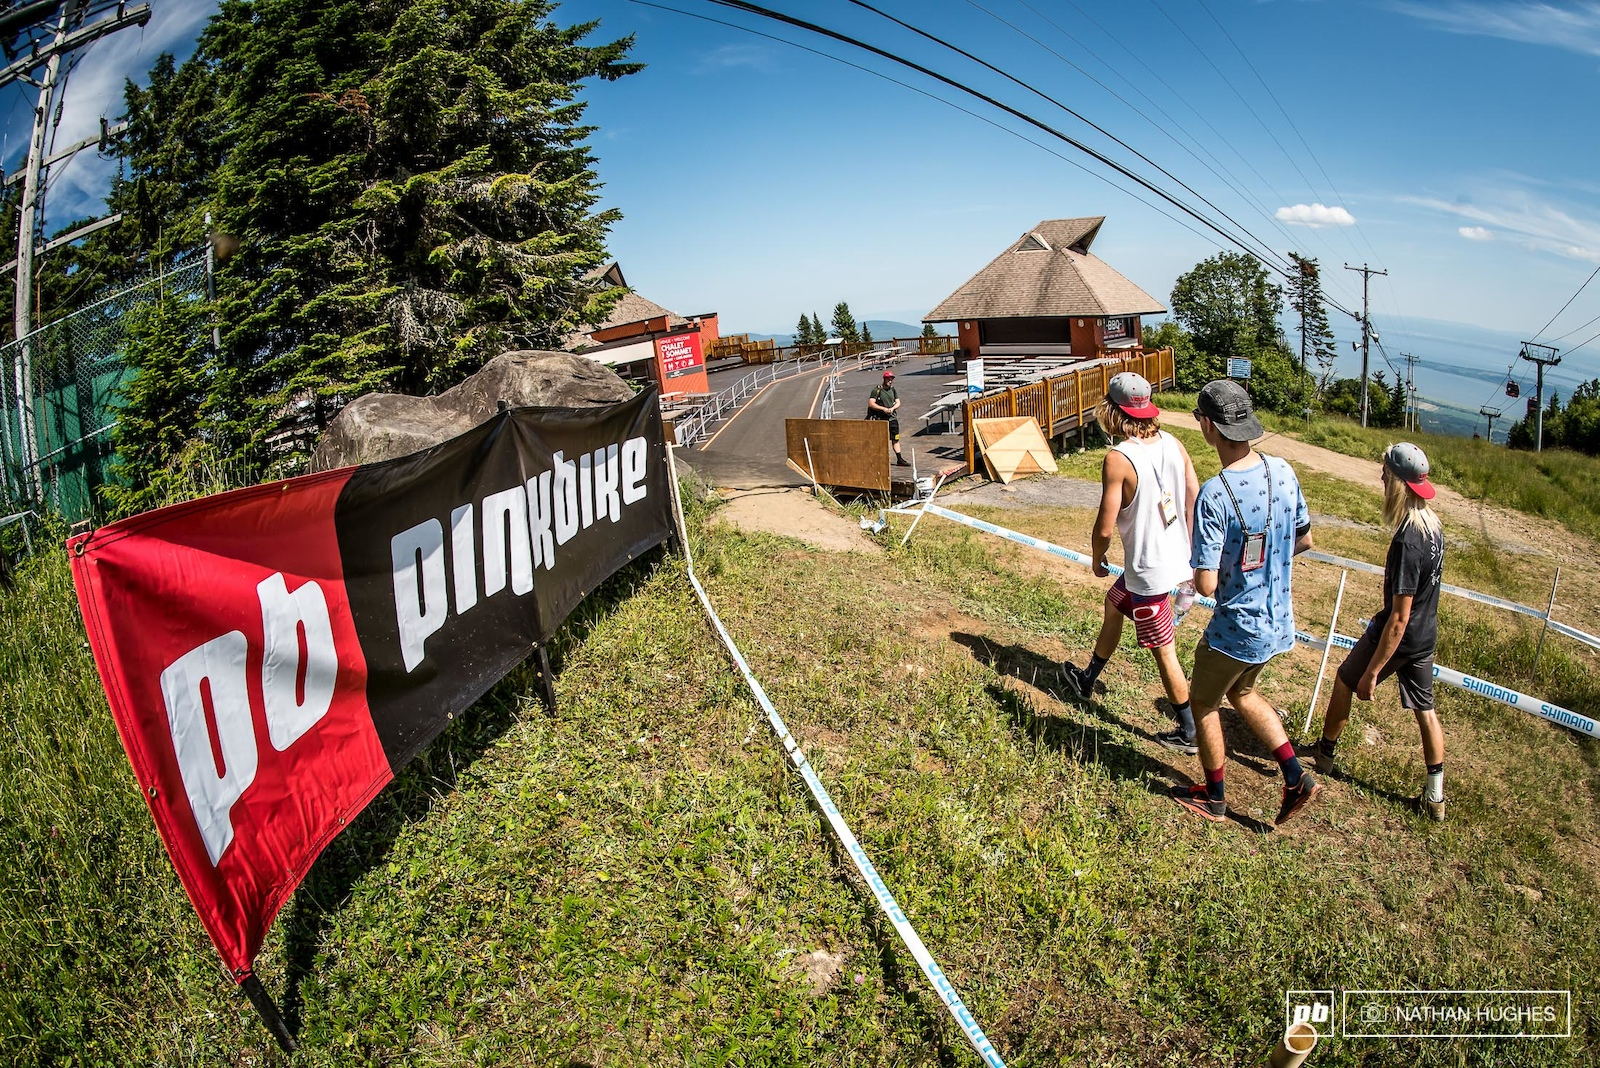 One of the first and only alterations to the course is an unlikely diversion across the decking of the mountain restaurant. This was actually where the first DH races back in 1991 began.